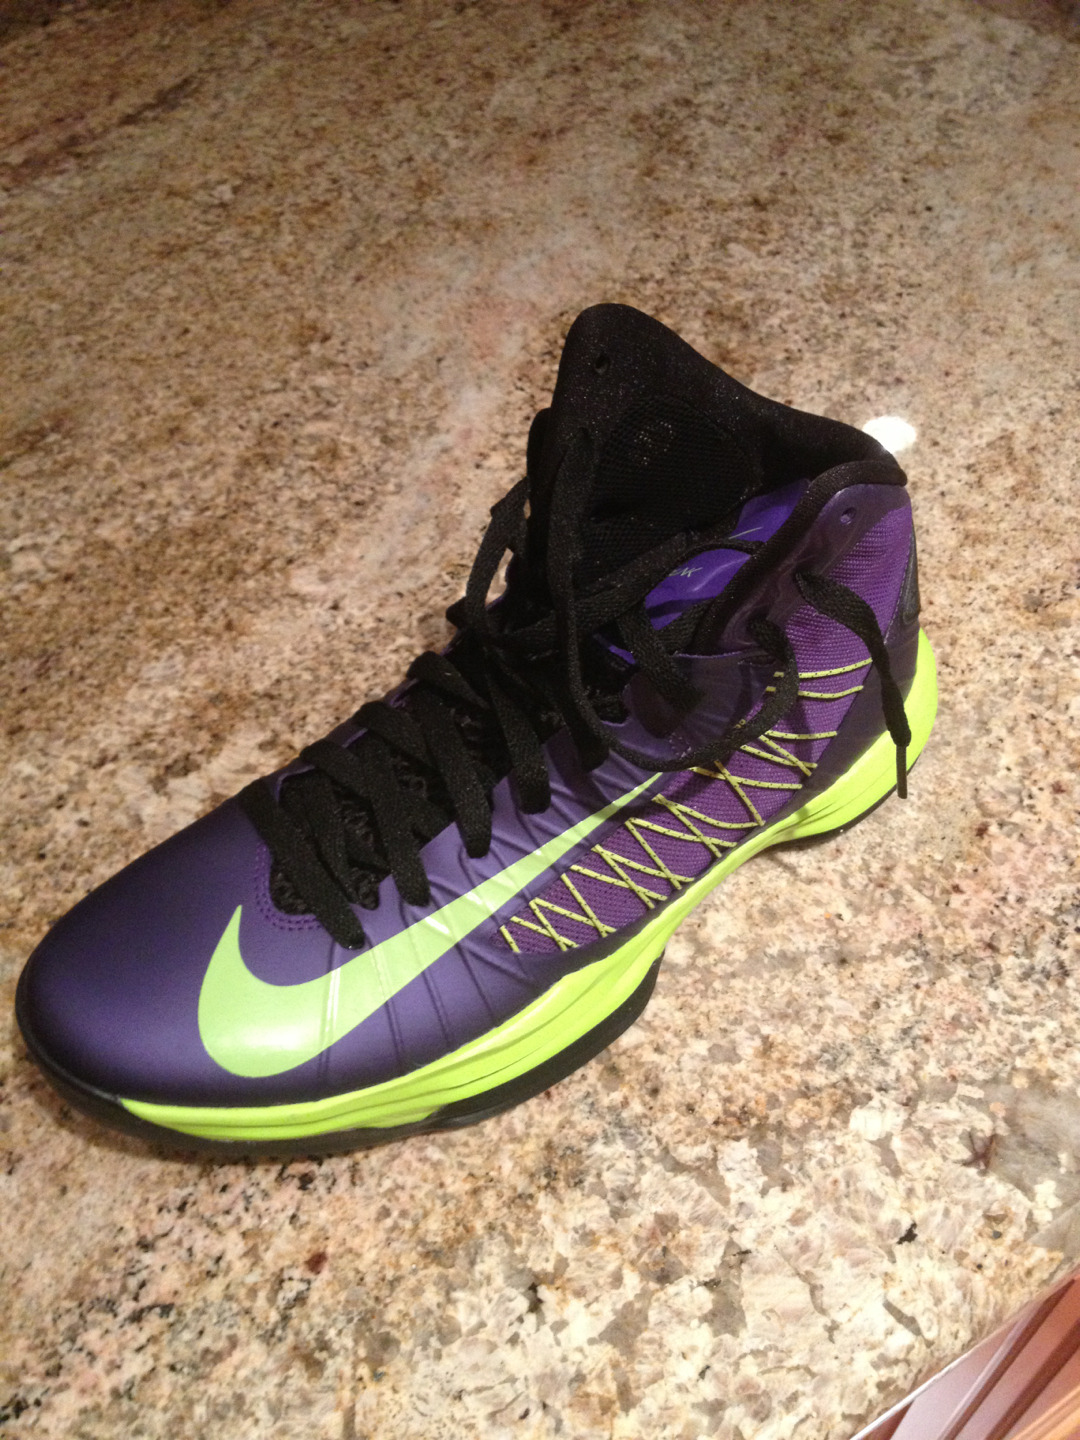 New bball shoes